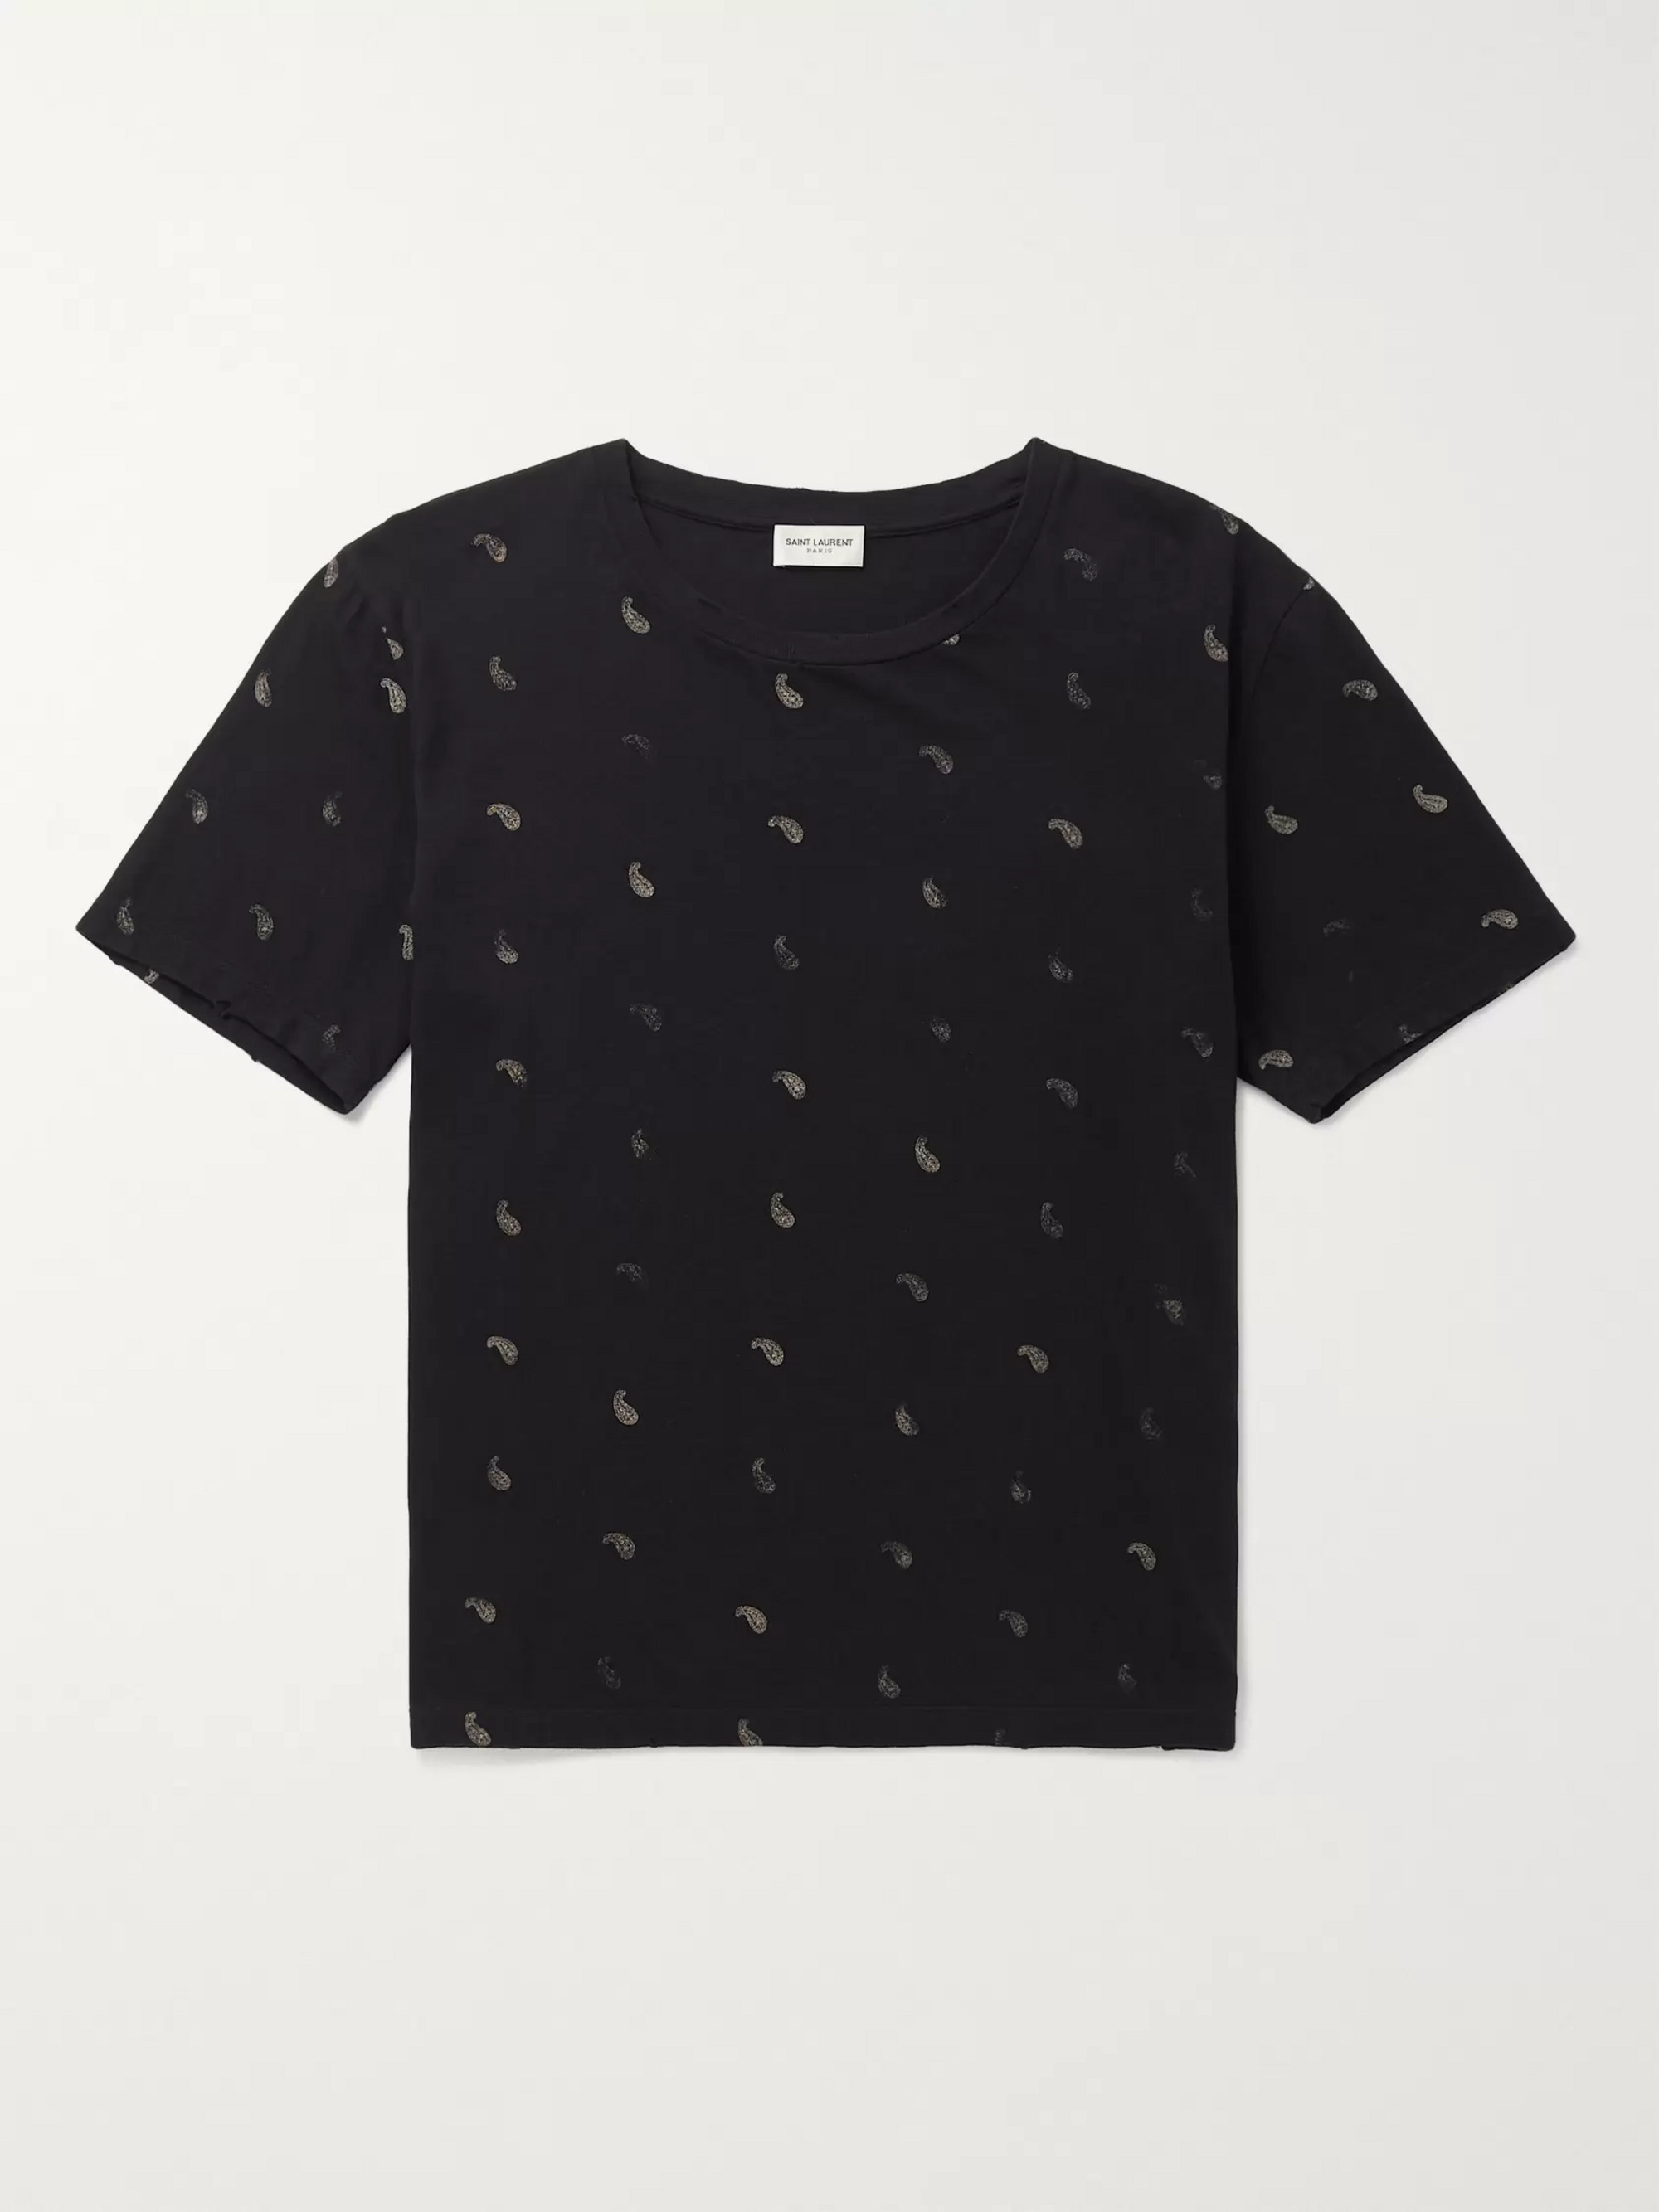 SAINT LAURENT Printed Distressed Cotton-Jersey T-Shirt